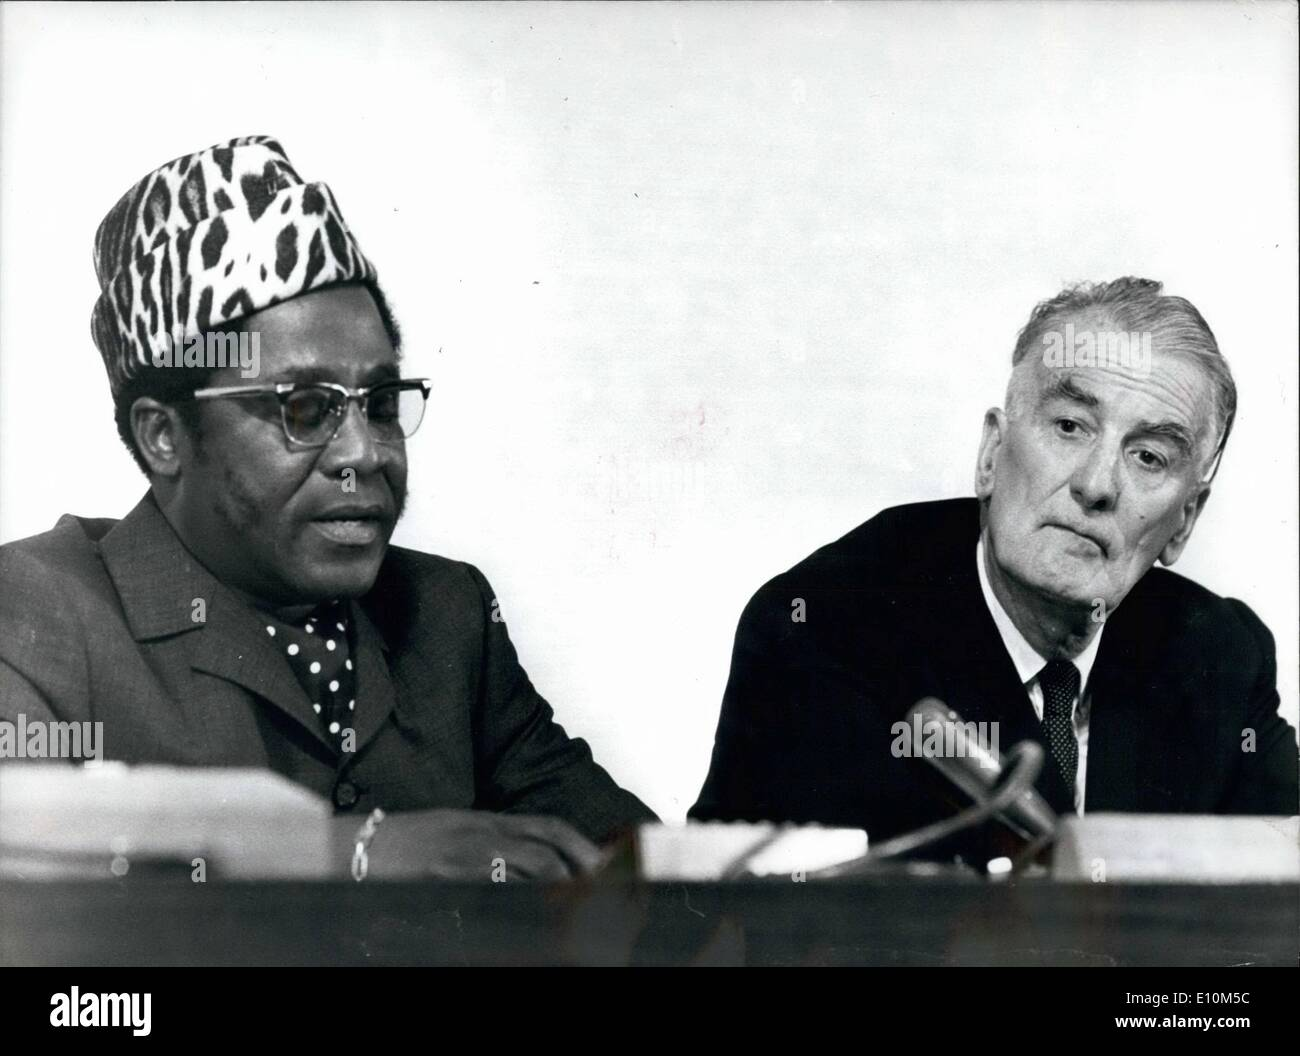 Jun. 06, 1973 - Leaders of the ILO Conference; Geneva, Switzerland; Here are two of the leading personalities of the 58th International Conference of the International labor Organization (ILO) that has started in Geneva. To the right the ILO general manager Wilfred Jenks (GB), left the President of the Conference, Tshiabola, Bintu's. - Stock Image